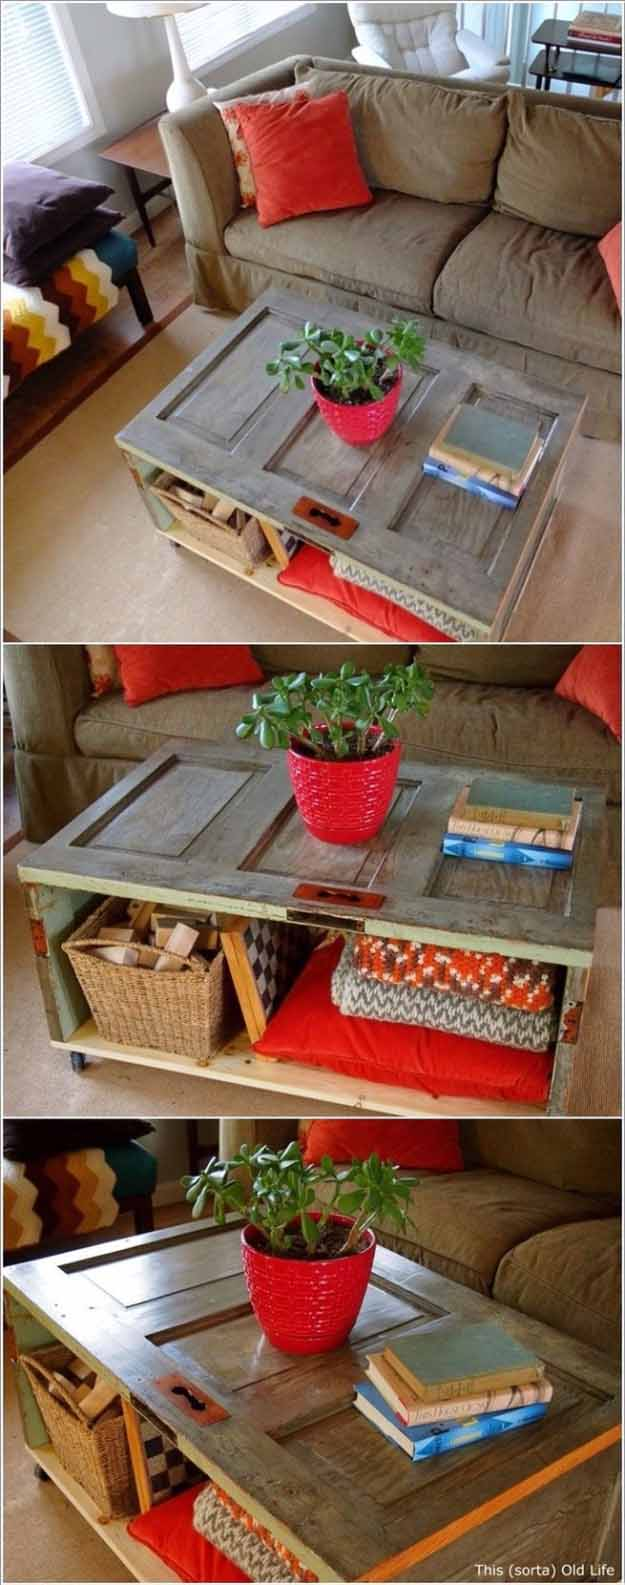 DIY Repurposed Furniture Projects | Easy Upcycling Ideas for the Home | DIY Coffee Table with Storage | DIY Projects and Crafts by DIY JOY #coffeetables #diyfurniture